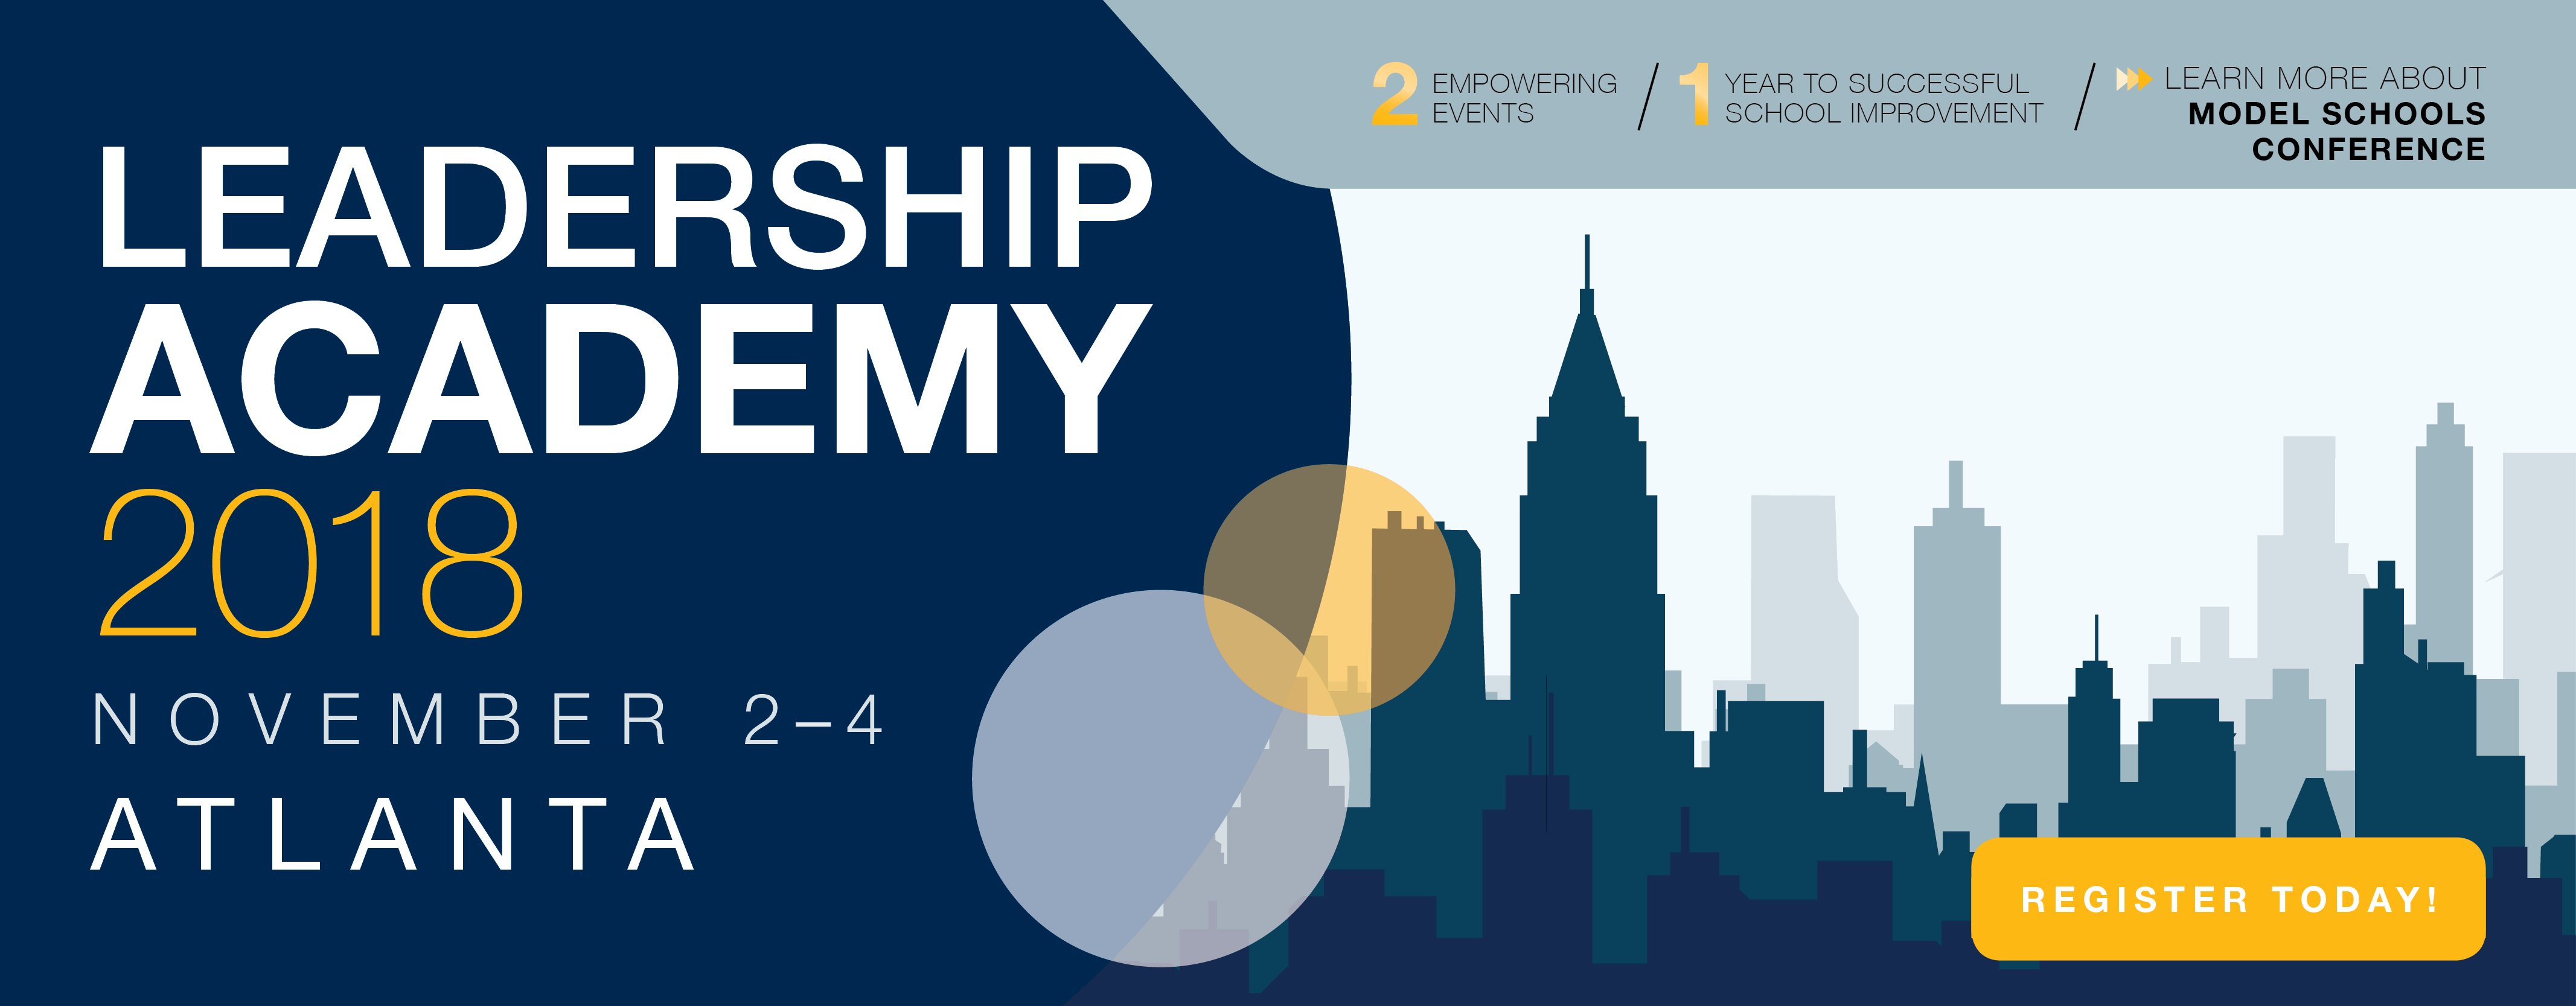 2018 Leadership Academy